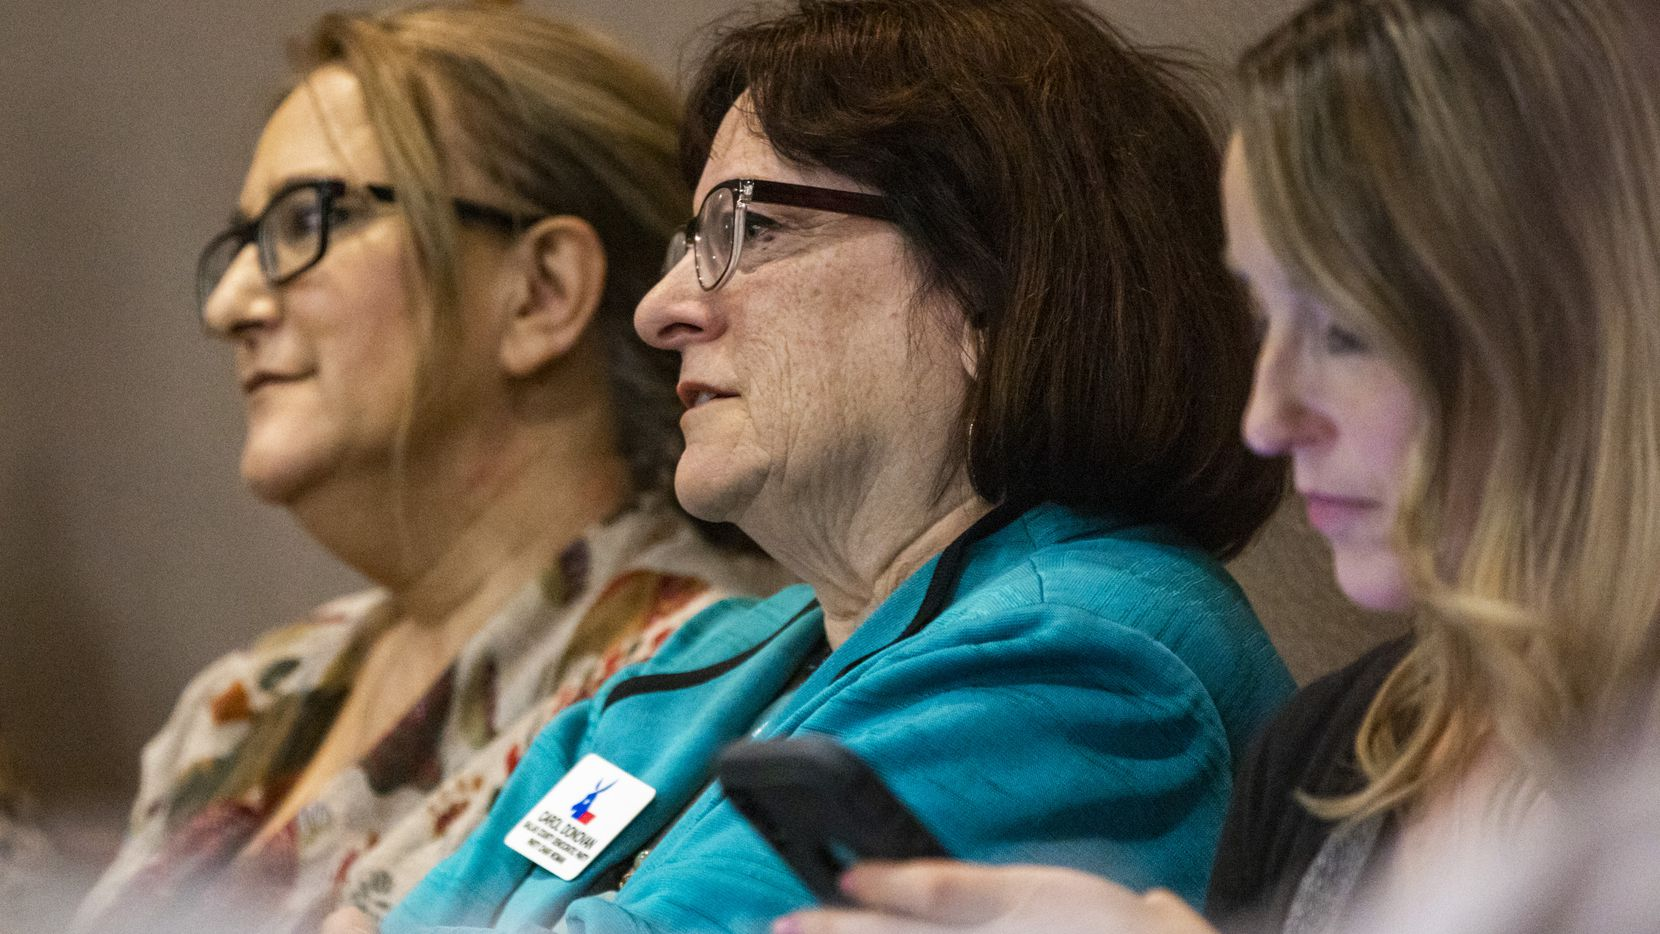 Dallas County Democratic Party Chair Carol Donovan, center, will resign later this year. In this file photo, she listens to testimony during a hearing before Judge Emily Tobolowsky at the George Allen Dallas County Civil Court building in downtown Dallas on Tuesday, March 10, 2020. (Lynda M. Gonzalez/The Dallas Morning News)